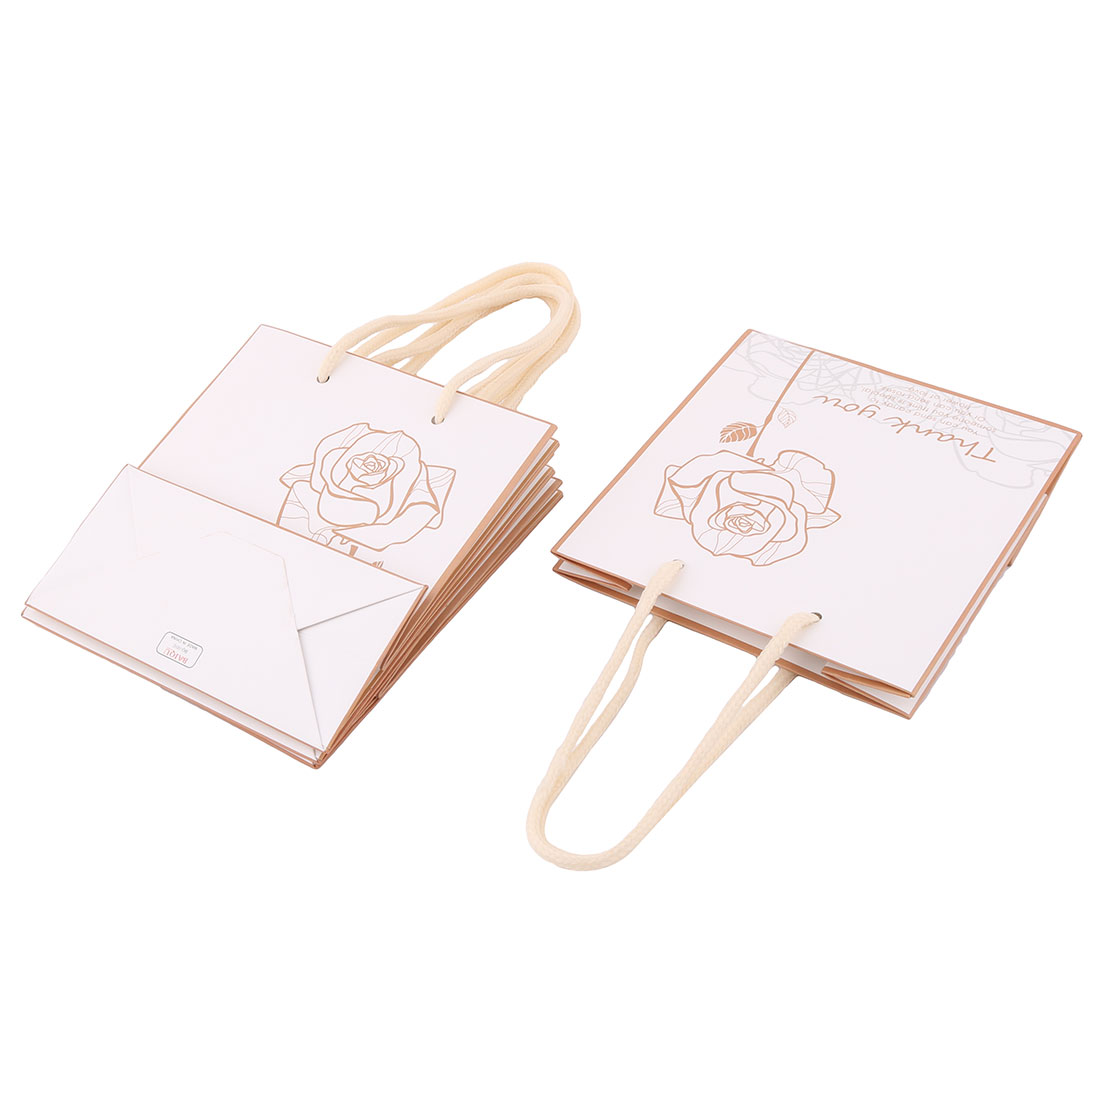 Boutique Store Rose Pattern Foldable Holder Handbag Wrapper Gift Bags 4 PCS